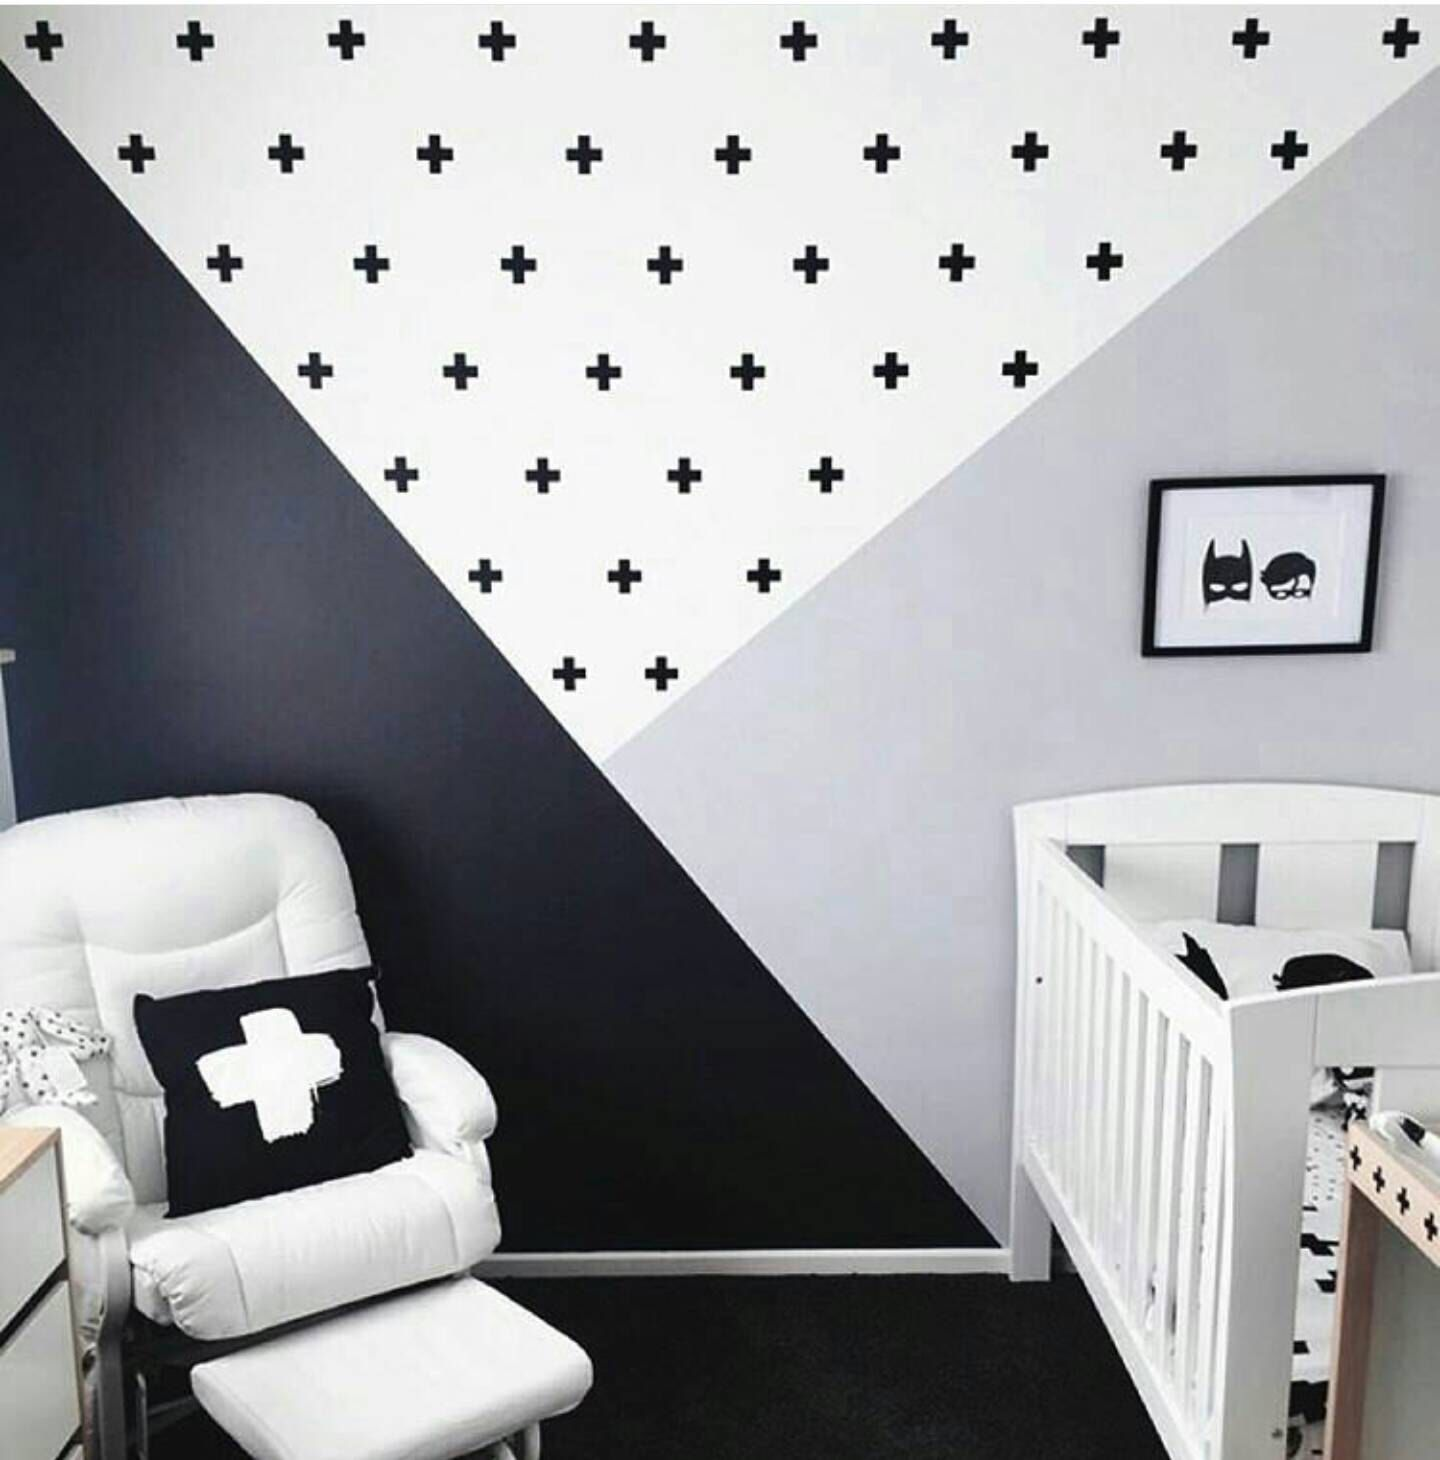 cross wall decal swiss cross cross decal swiss cross decal cross wall decal swiss cross cross decal swiss cross decal swiss cross decals plus sign wall plus sign modern wall decal 007